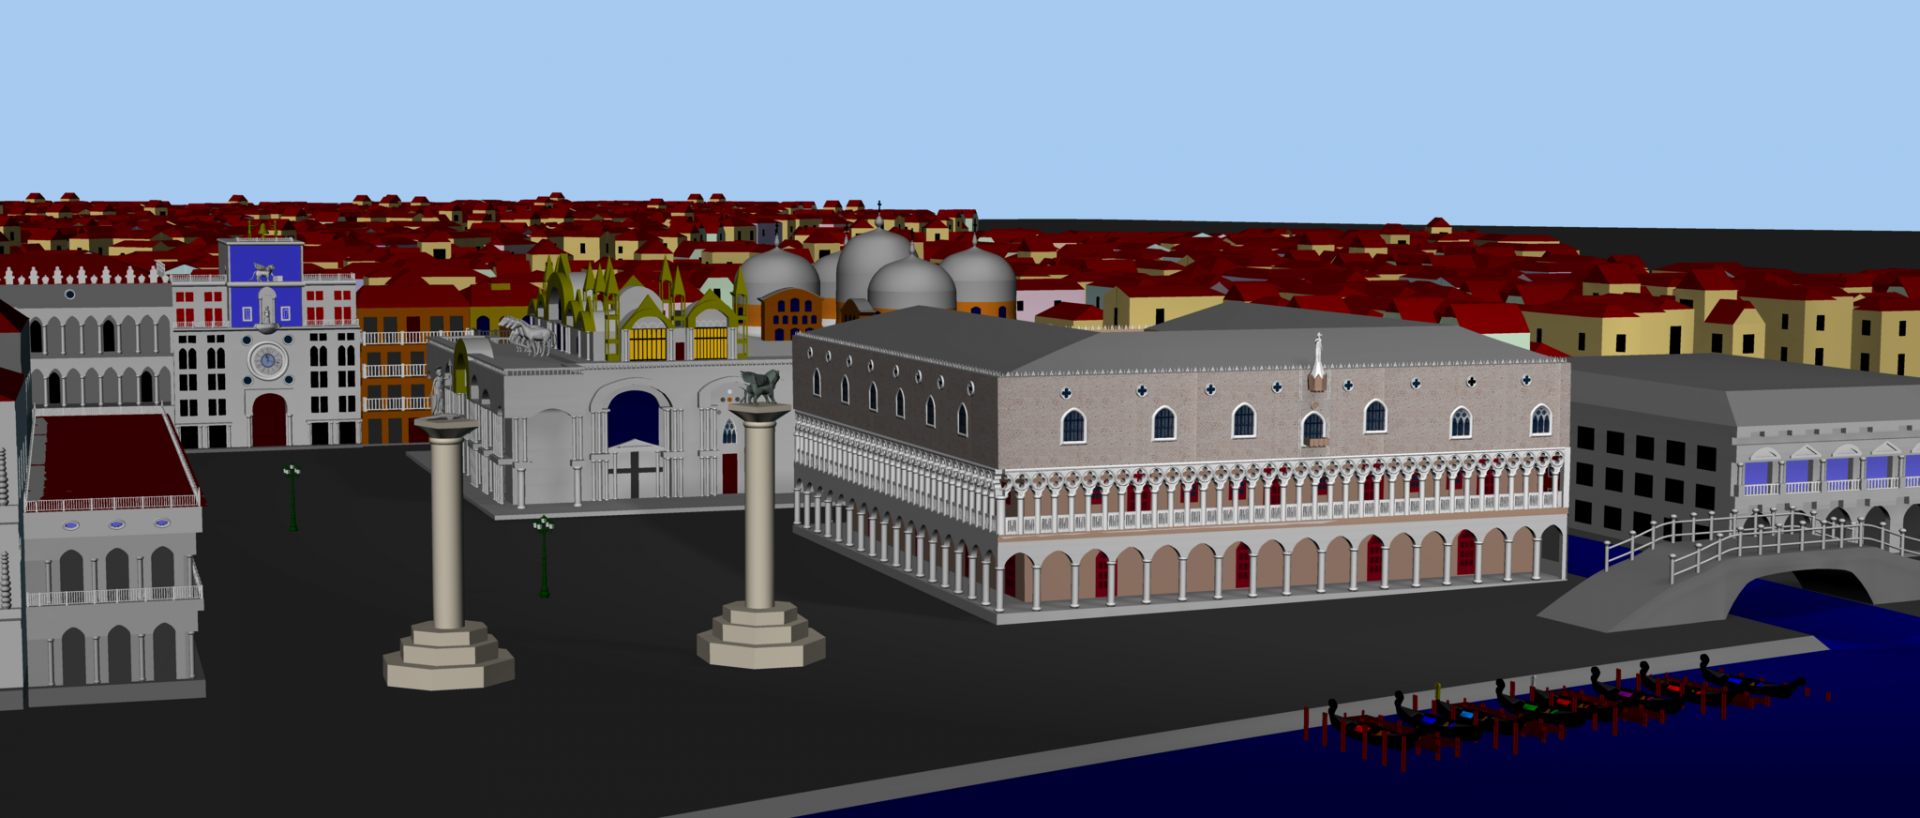 02 Venice in progress different angle regular lights0.png